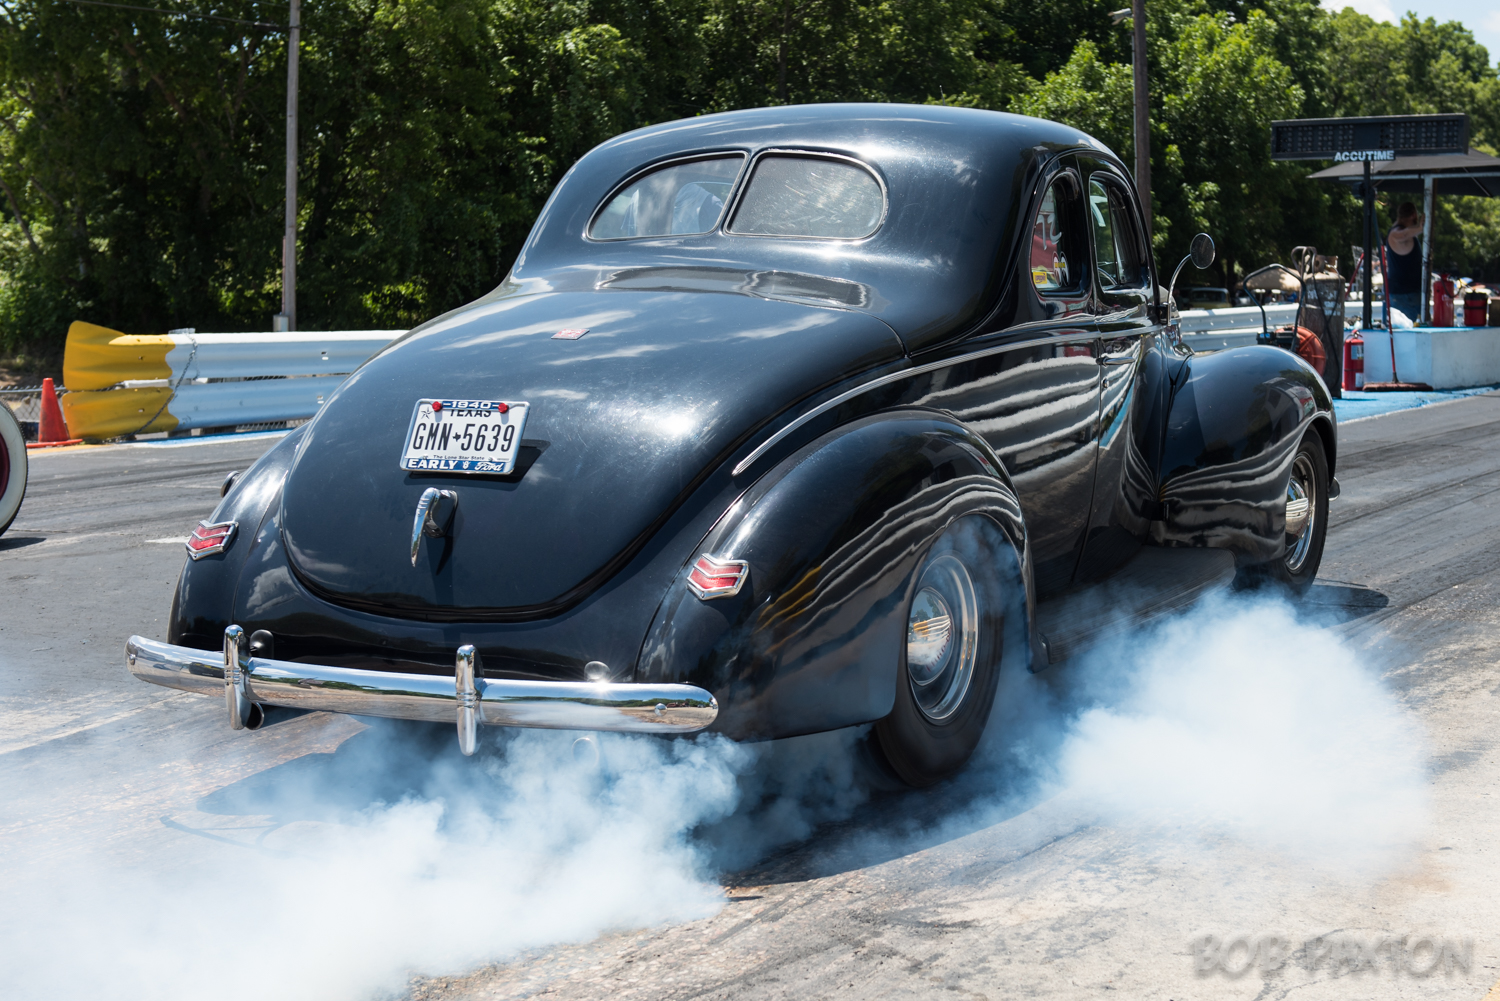 Day Of The Drags 2016: More Awesome Images From Little River Dragway In Texas!